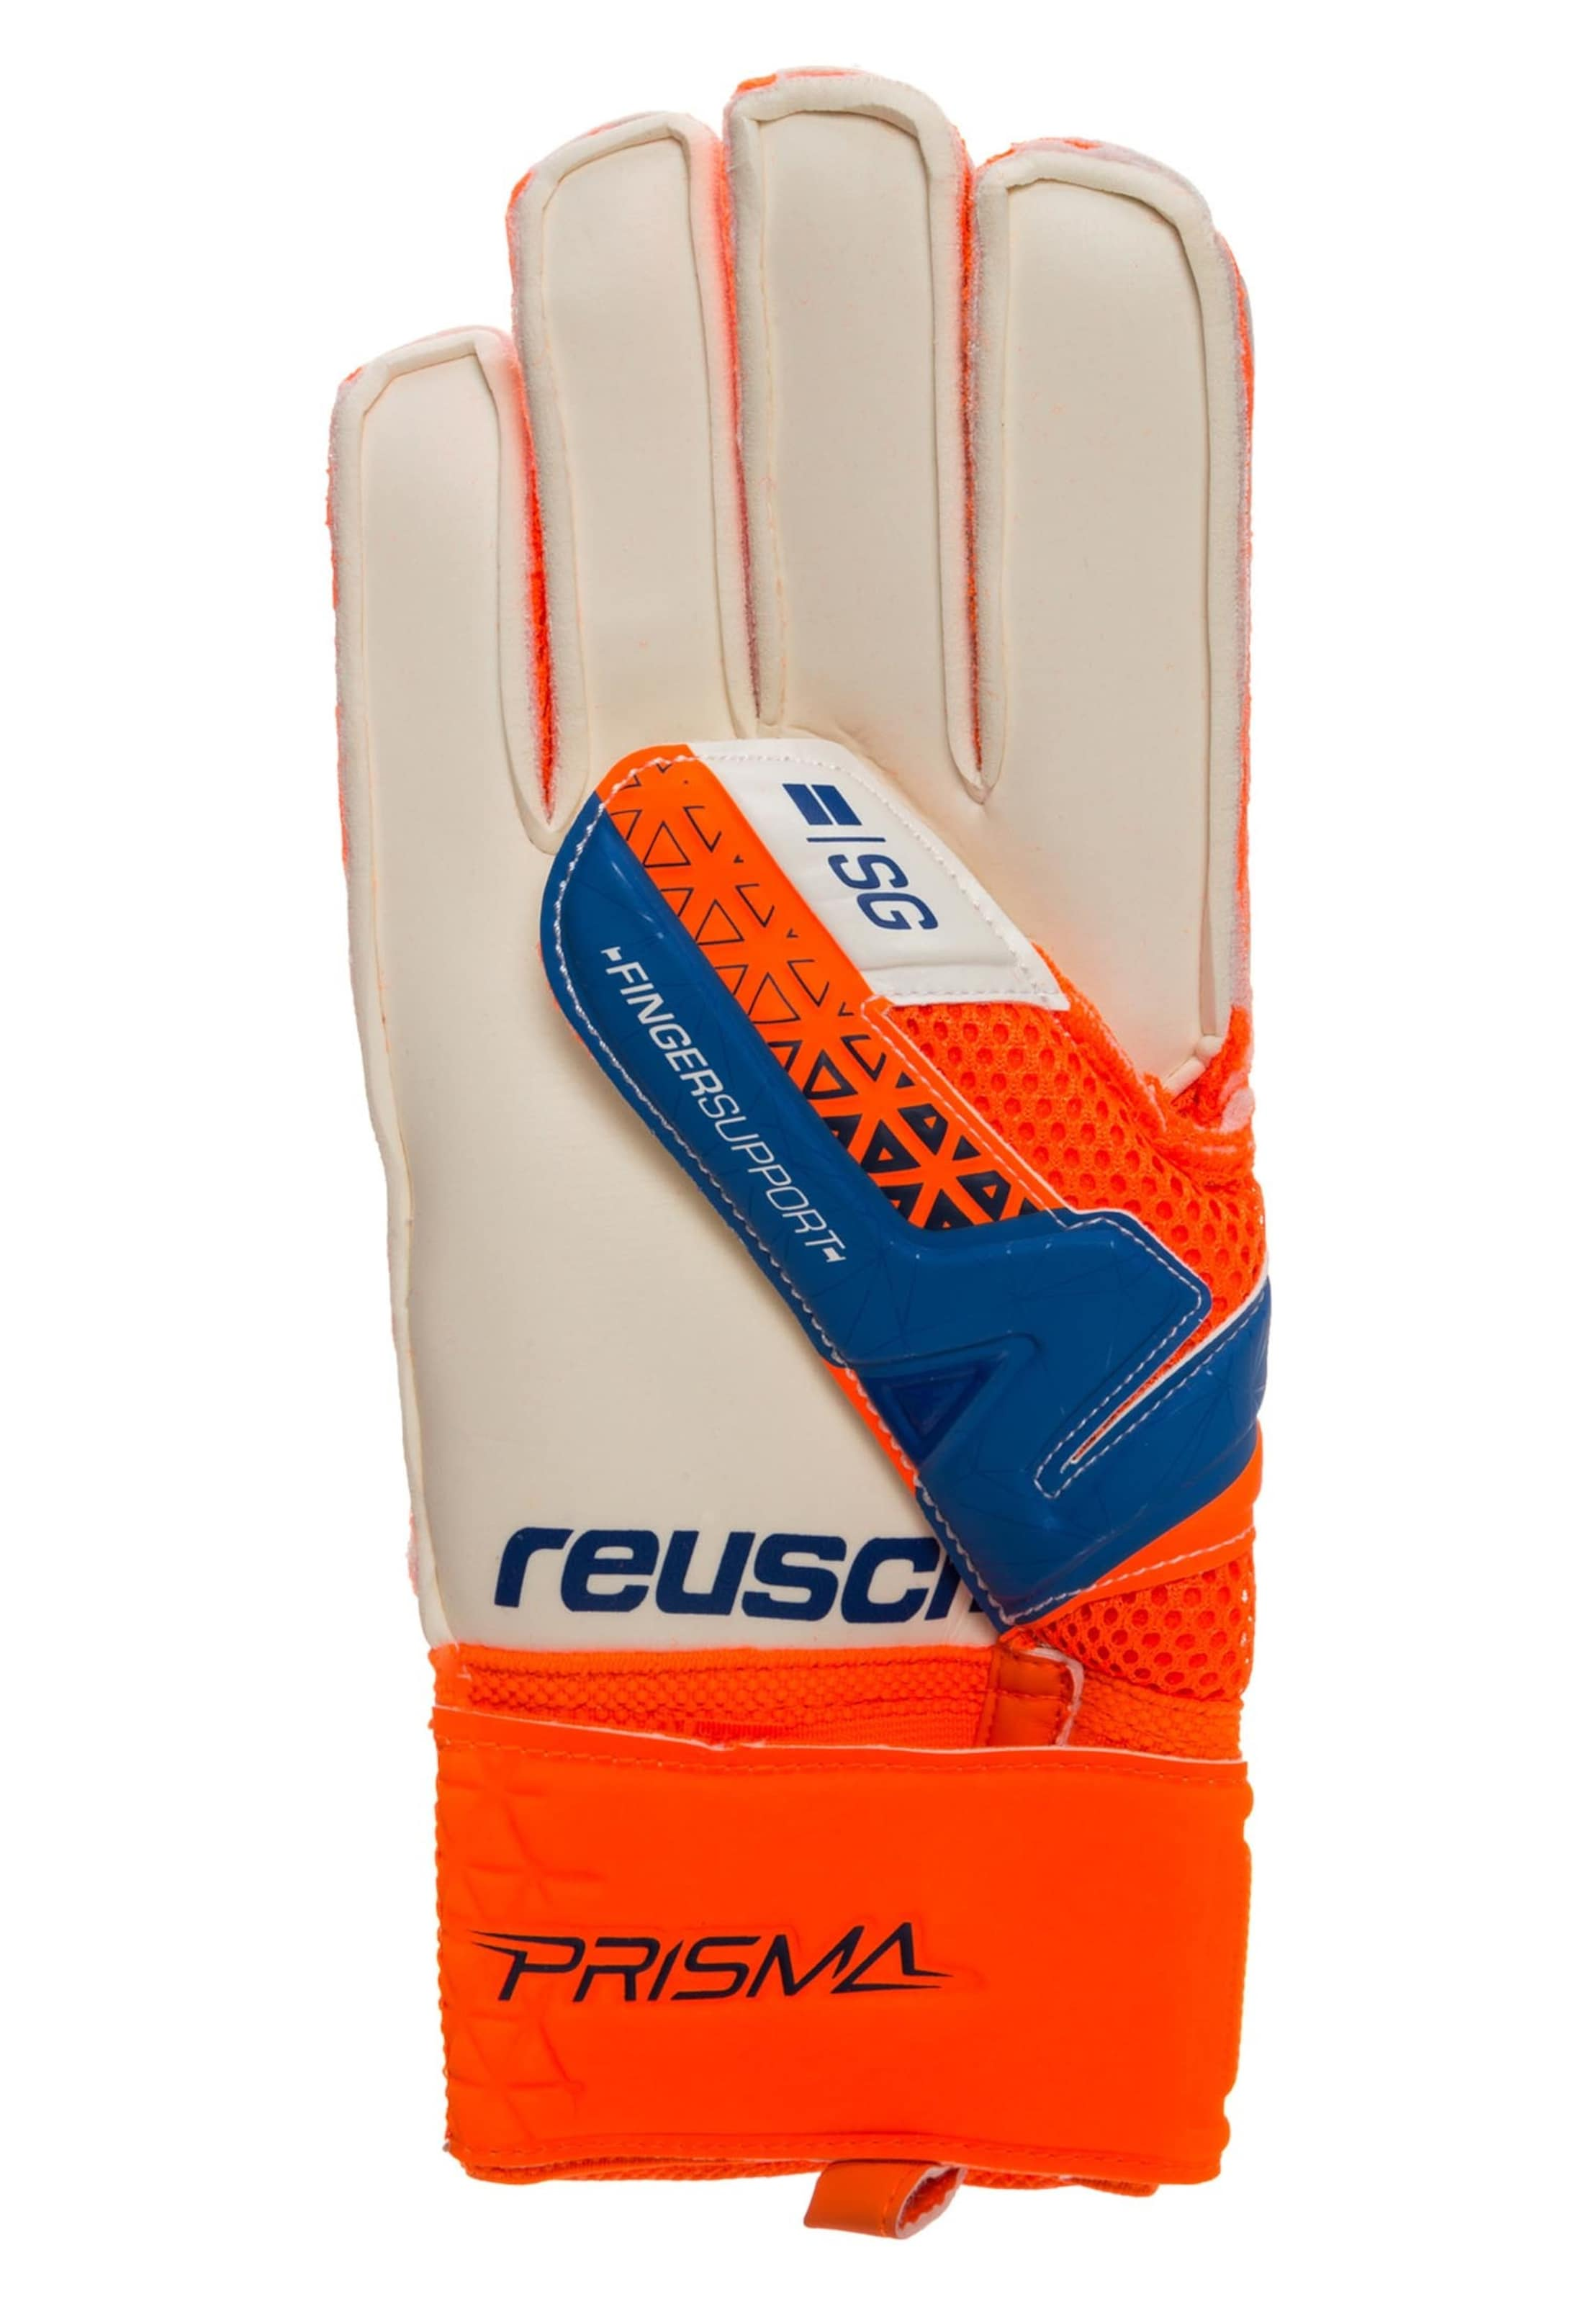 Support' De Sg Sport Finger Gants 'prisma BeigeBleu Orange Reusch En yYb6gf7